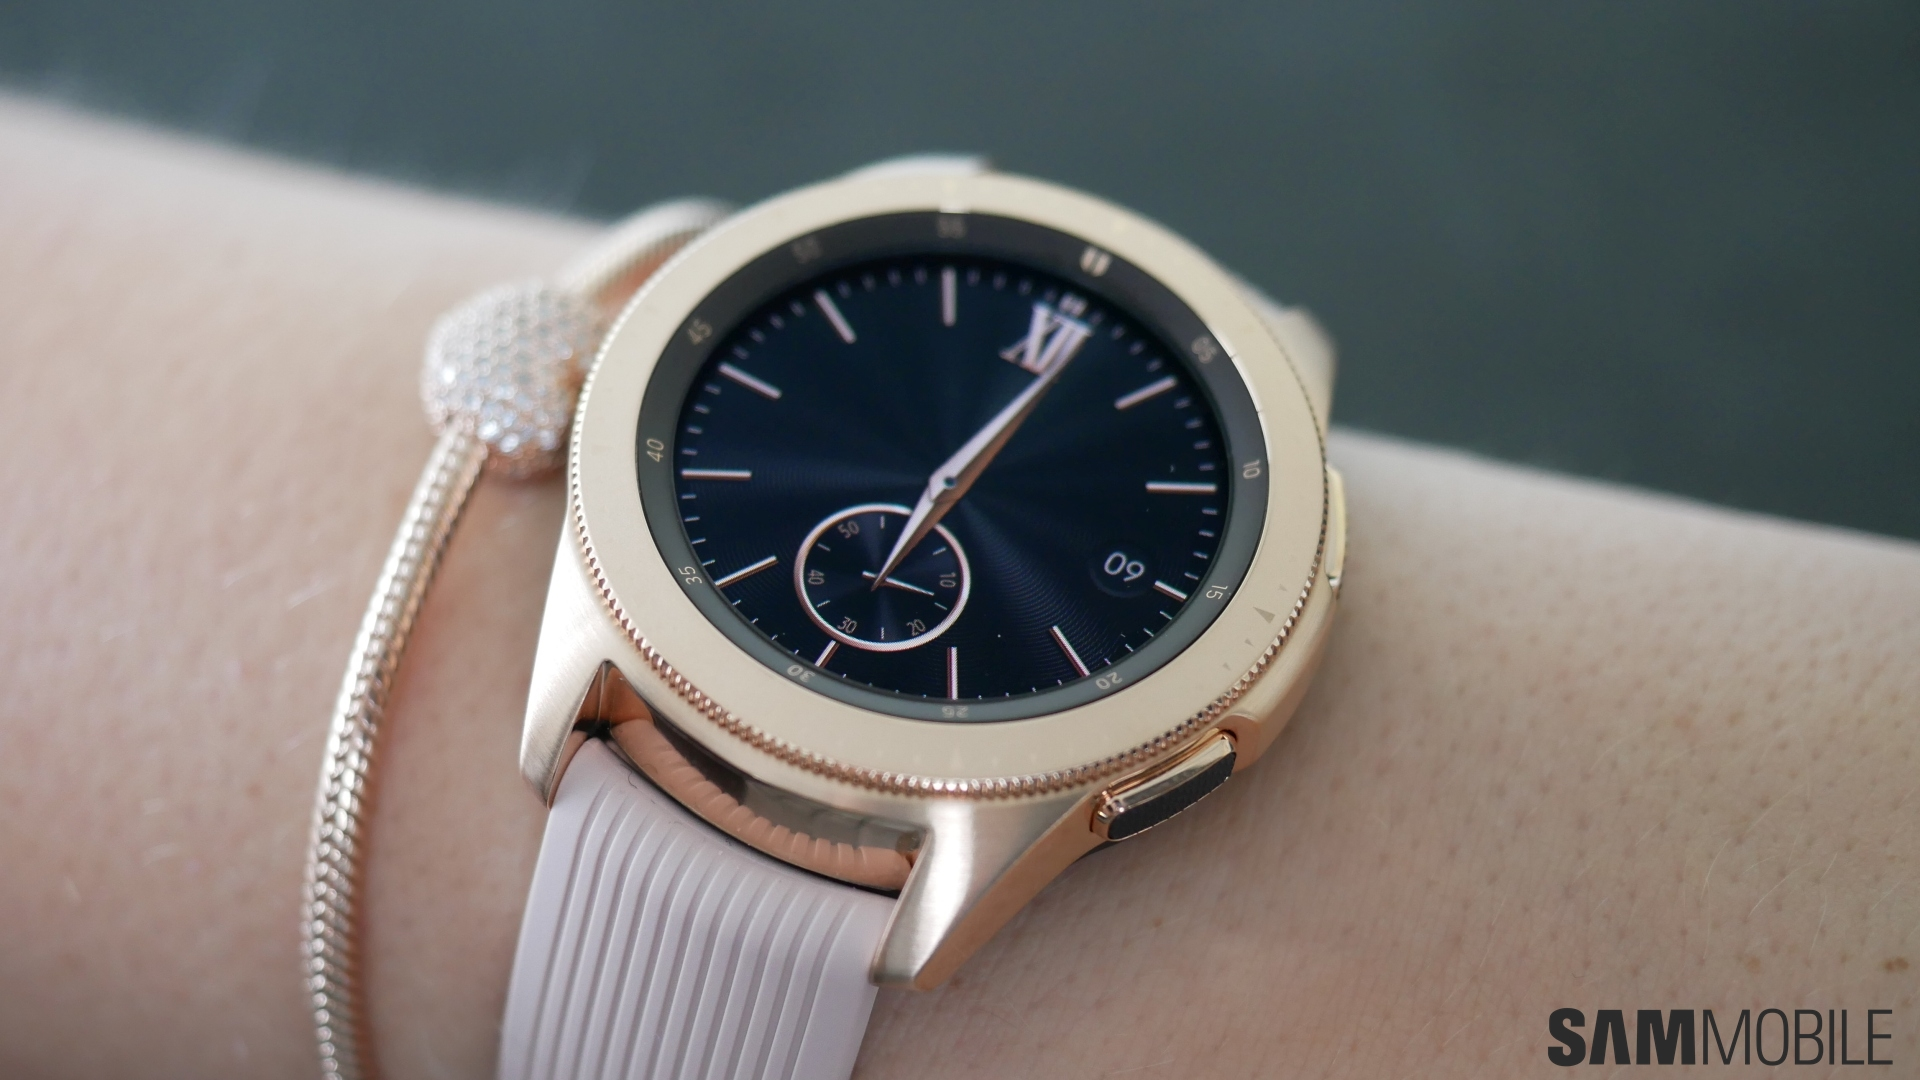 Samsung Galaxy Watch Review A Clockwise March Towards Perfection